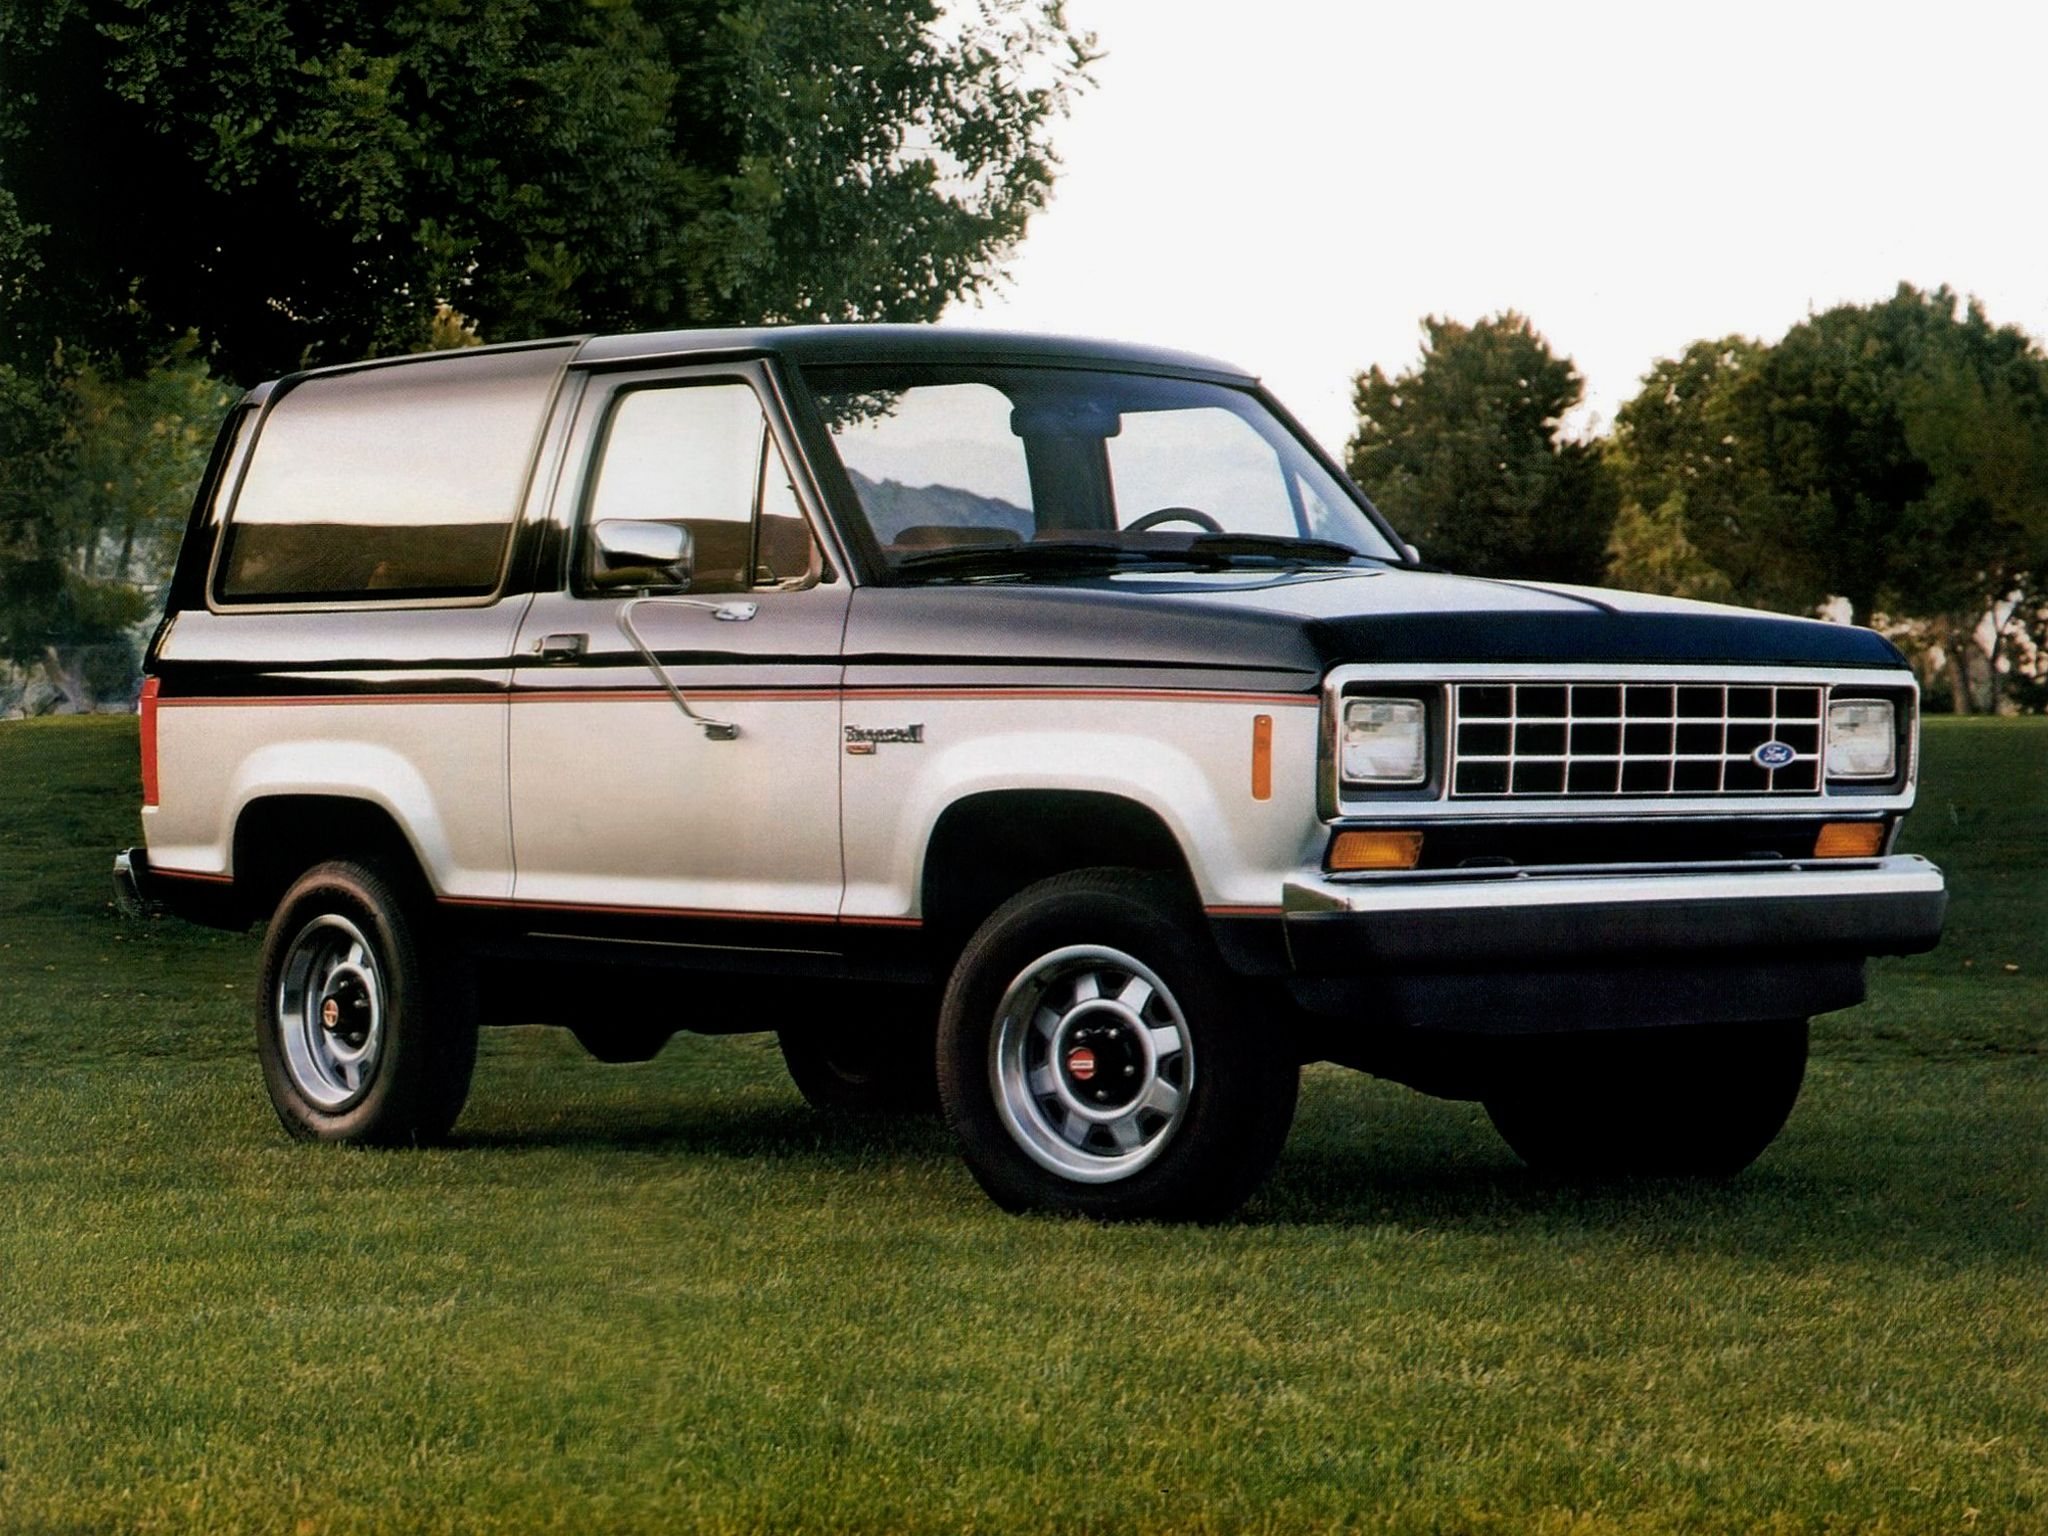 The ford bronco ii is a two door compact sized four wheel